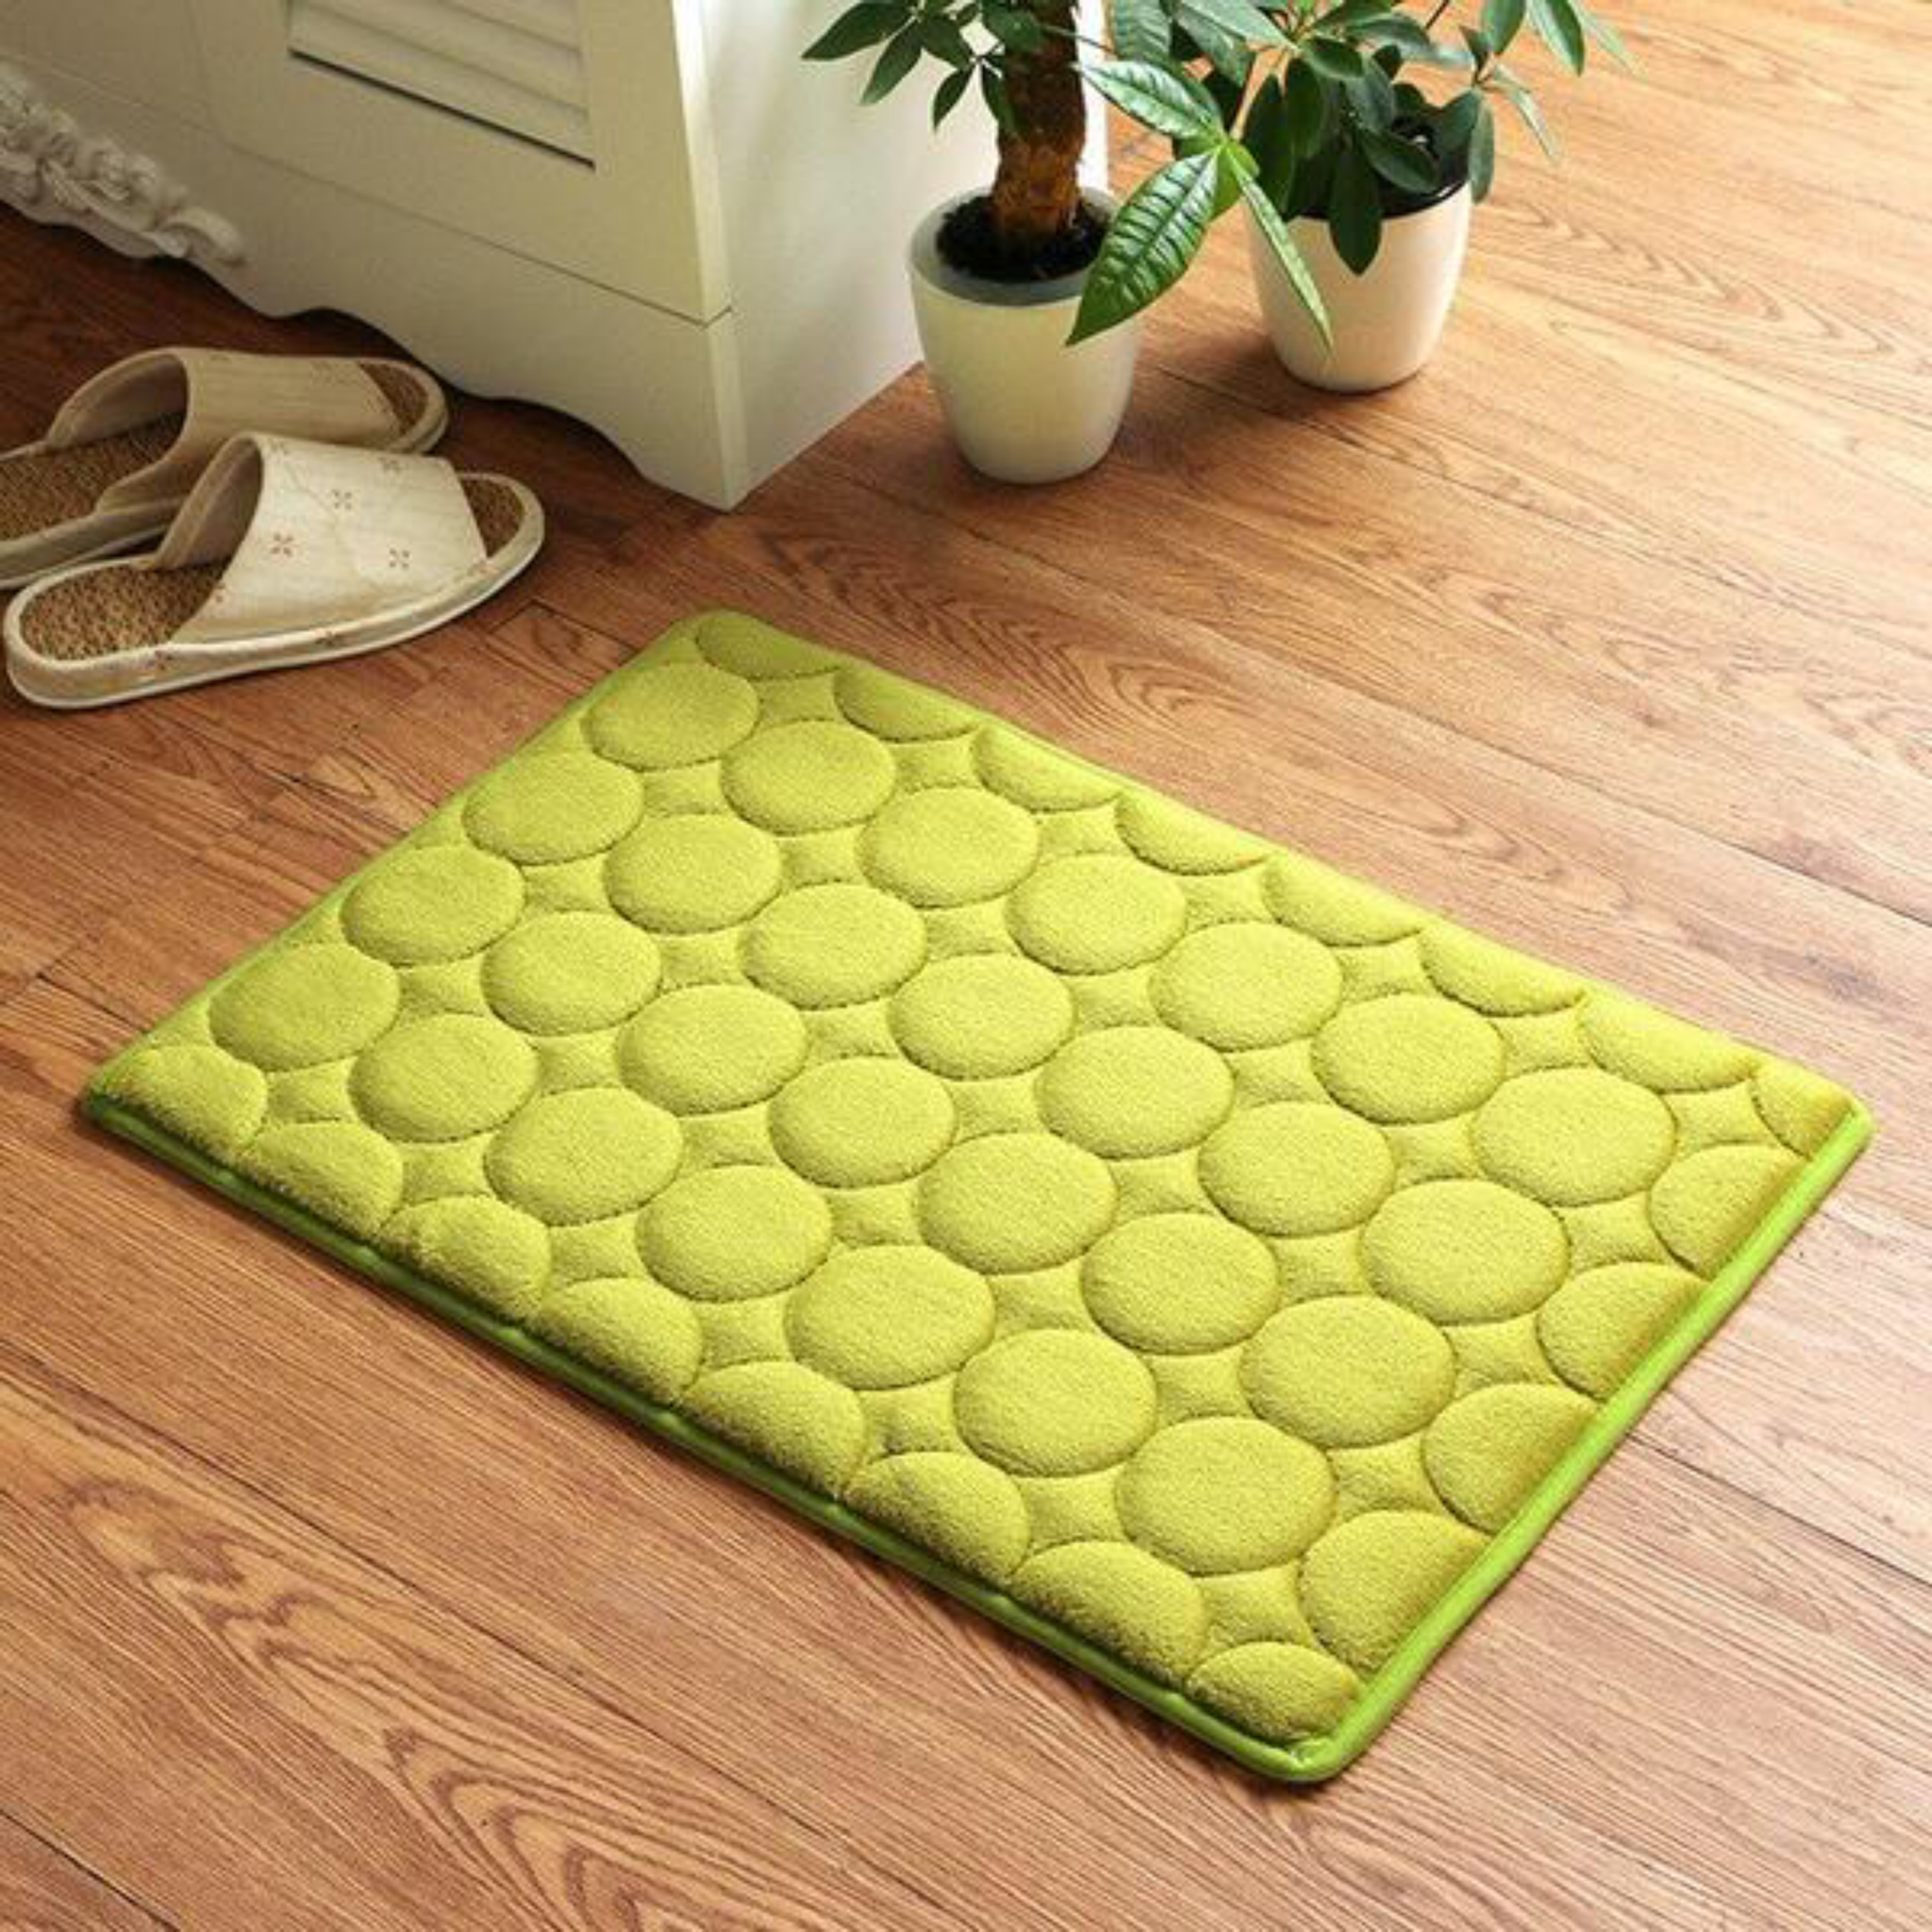 Japanese Yellow Memory Foam Bath Mats Coral Anti-slip Bathroom Carpet Water Absorbing Shower Room Door Mats Foot Pad Washable Bathroom Bedside Rug Japan Home Decor Accessories